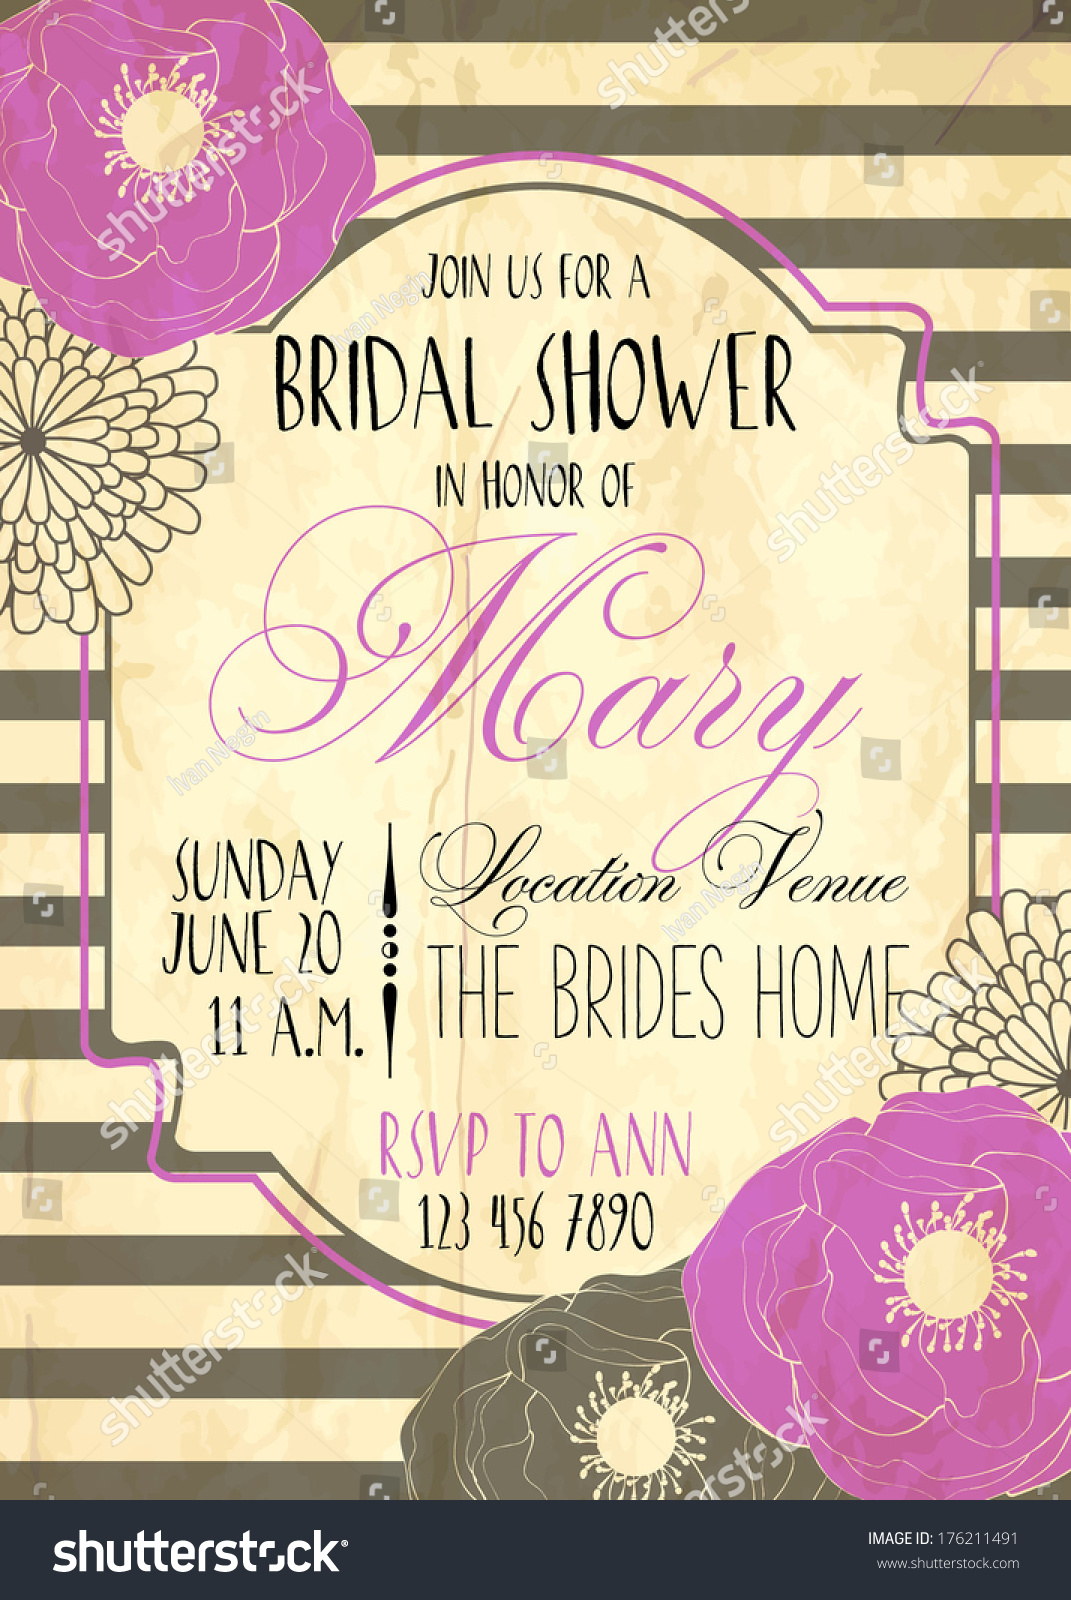 Bridal shower card stock vector 176211491 shutterstock bridal shower card kristyandbryce Image collections